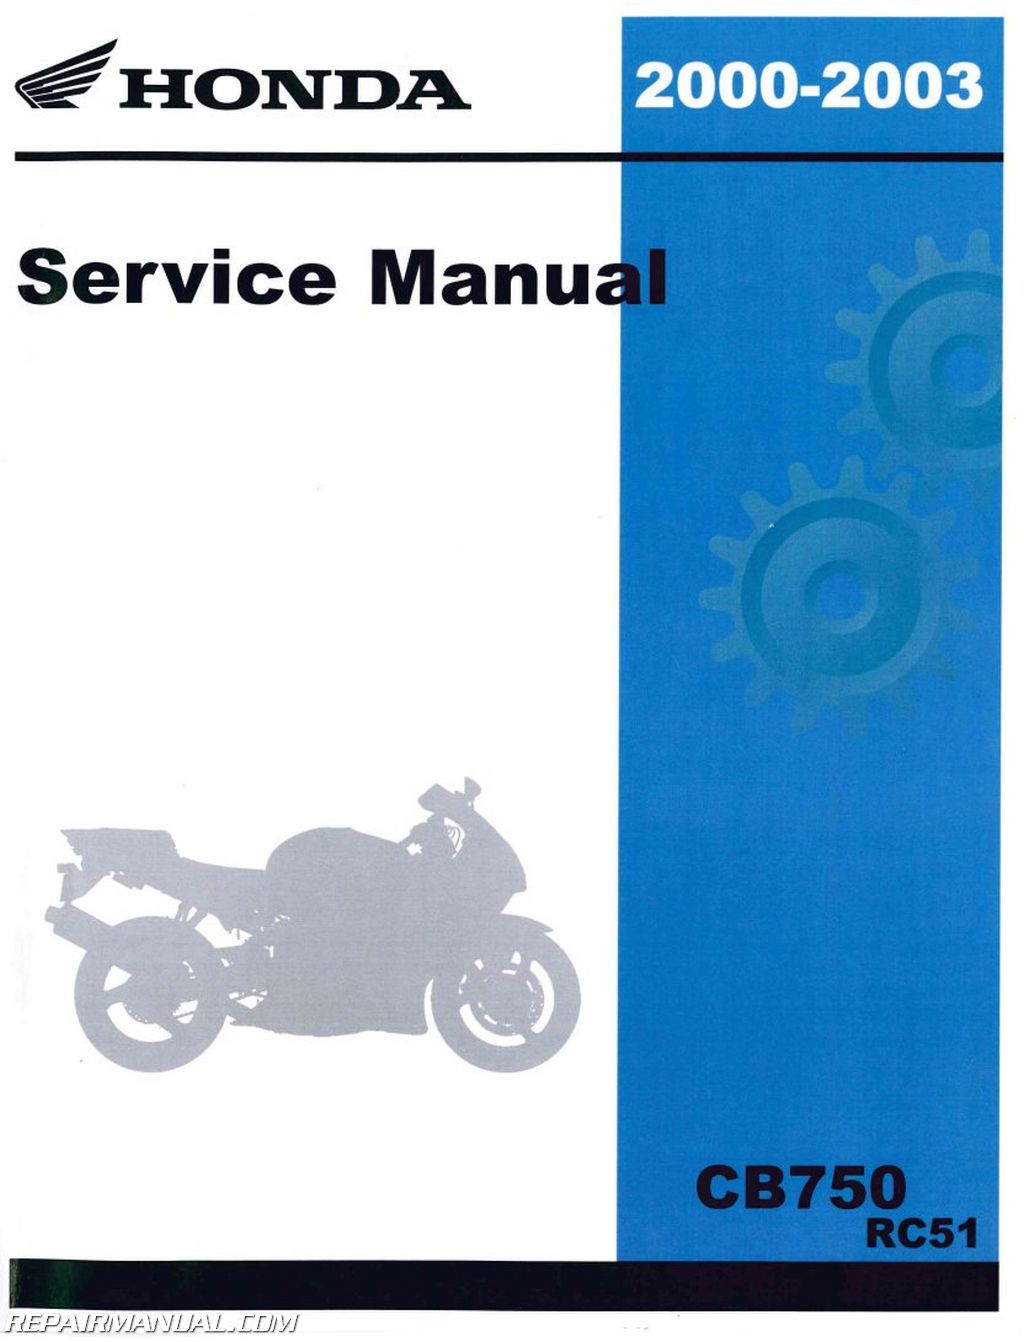 Wrg 2586 Honda Cb 750 Sc Nighthawk 1984 Service Manual 2019 Ebook Rc51 Wiring Diagram 2000 2003 Cb750 Motorcycle Rh Repairmanual Com